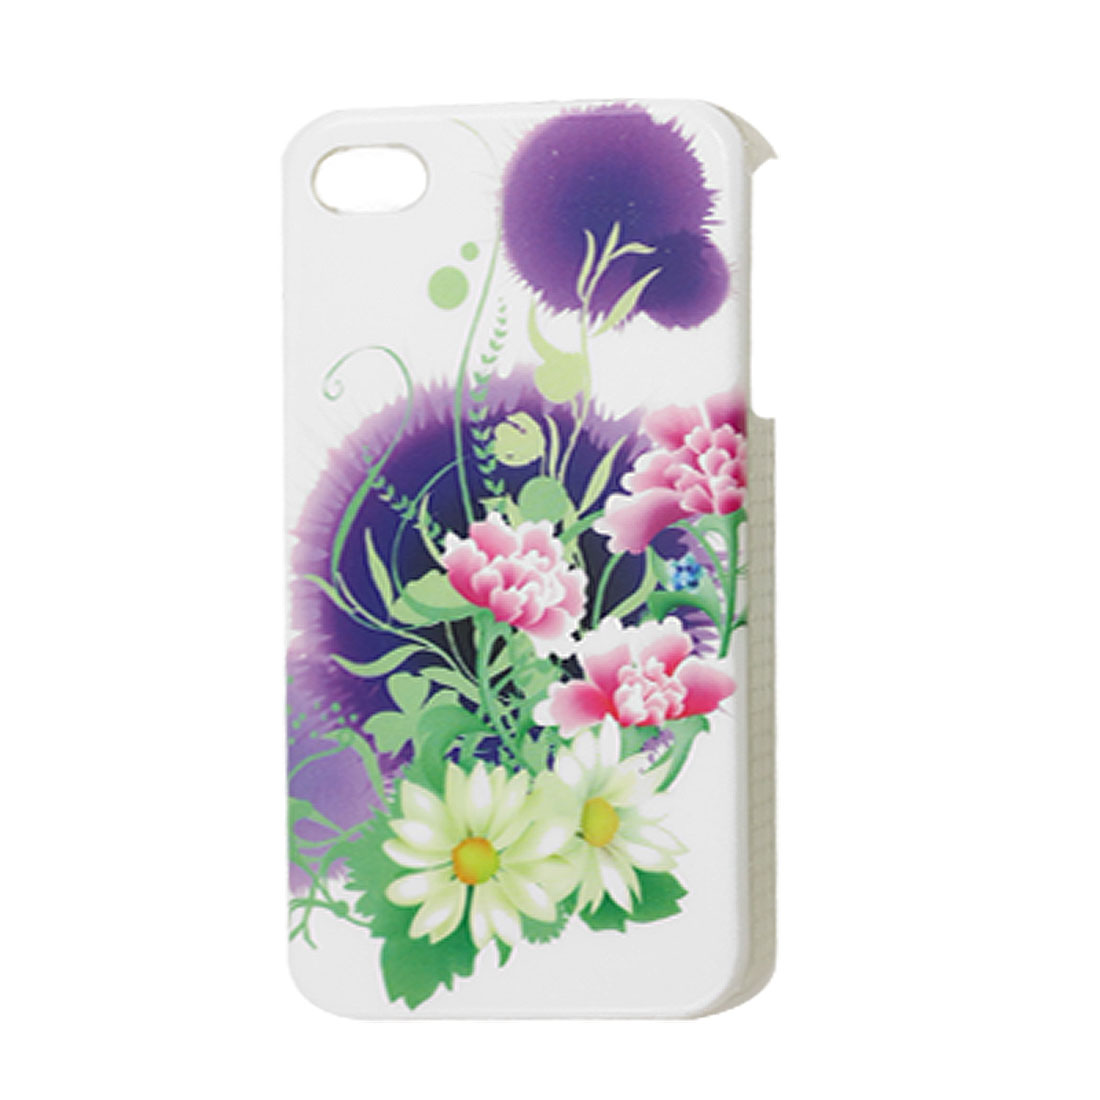 Floral Pattern Hard Plastic IMD Back Cover Guard for iPhone 4 4G 4S